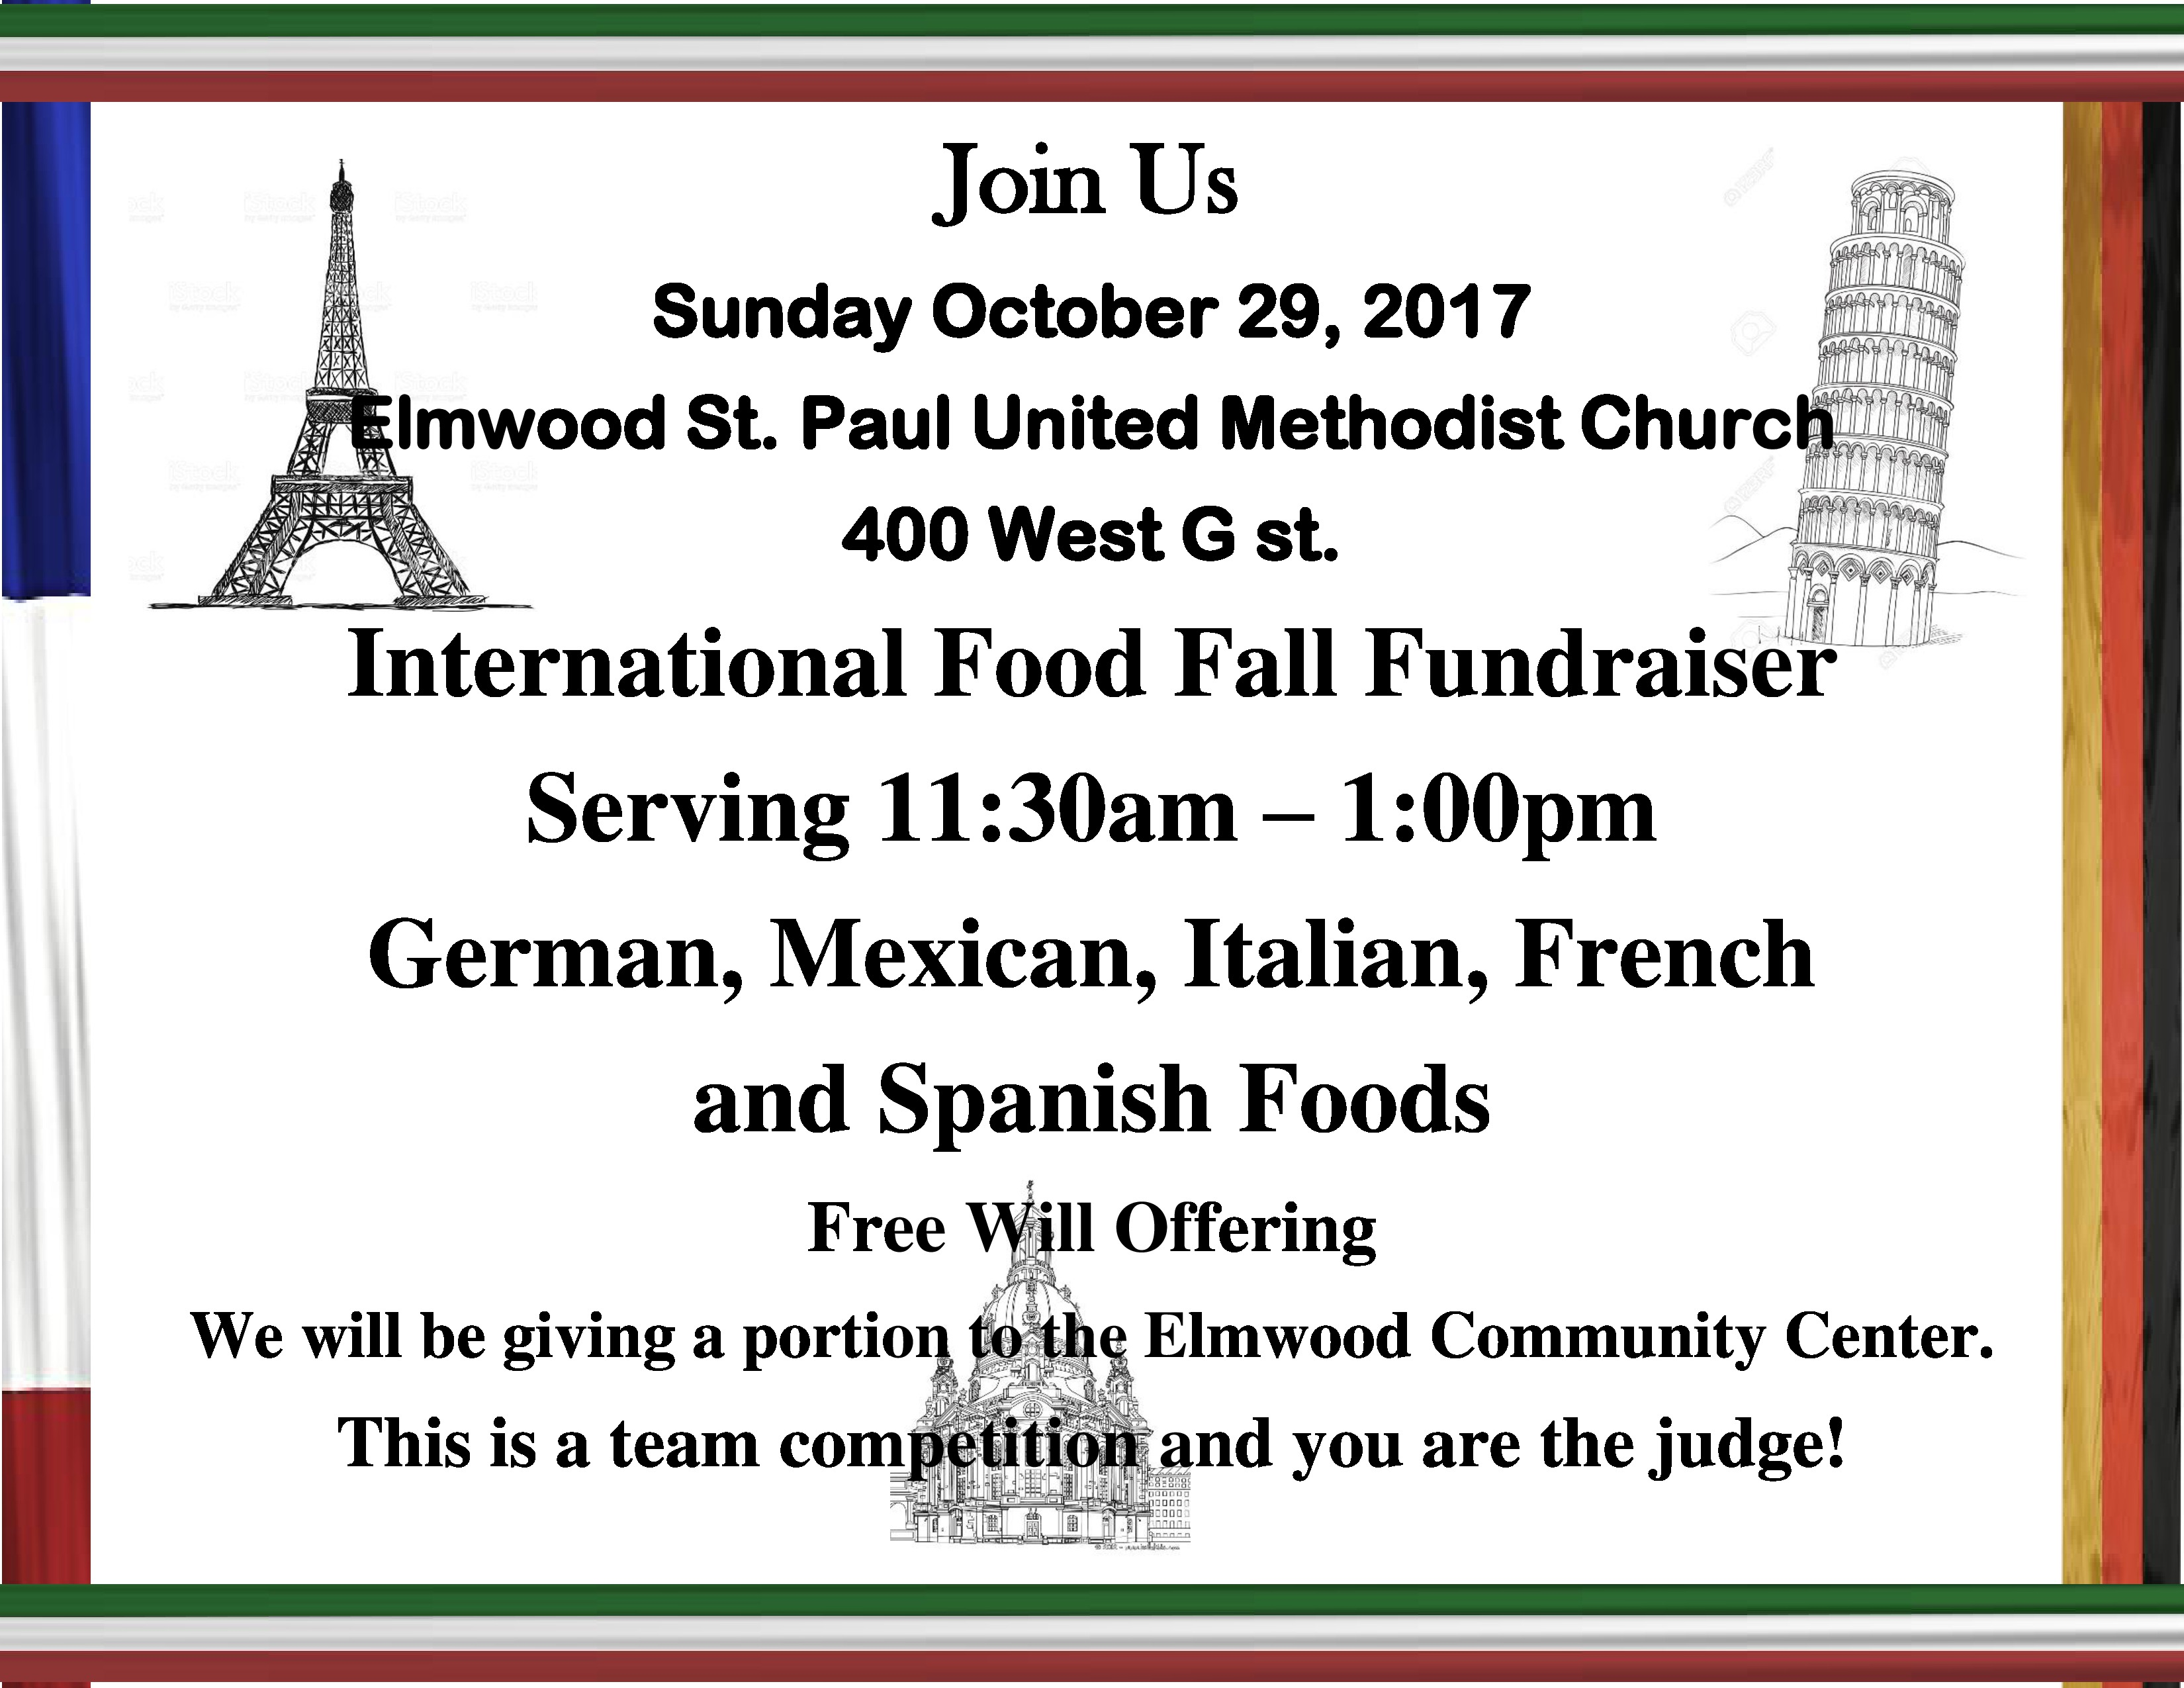 Internation Food fundraiser new 9 27 2017 page 0 1